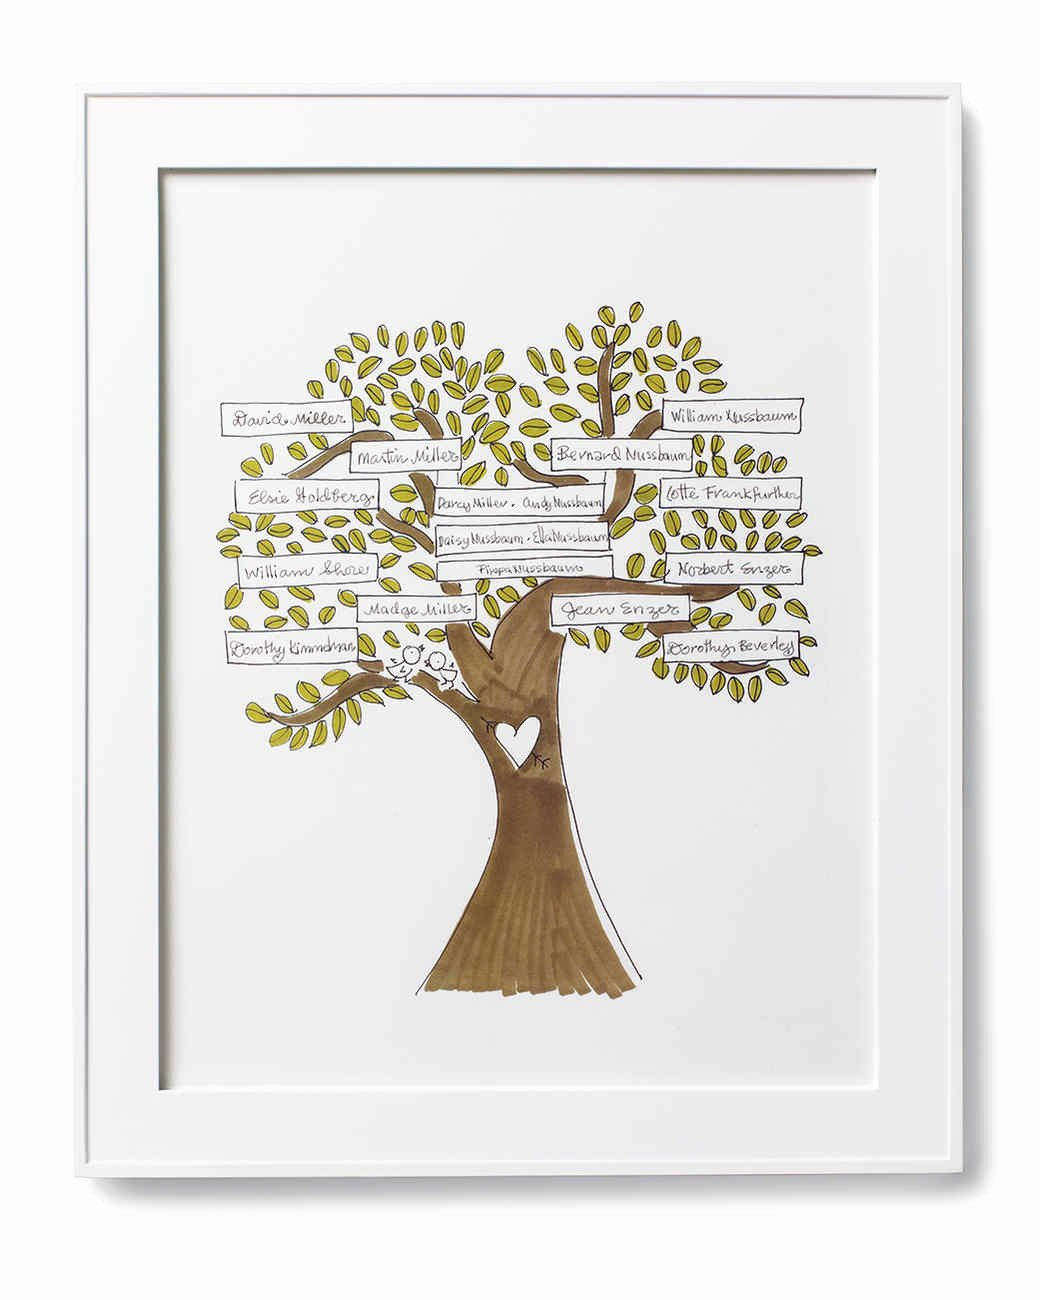 Family Tree Clip Art Templates Elegant Family Memorykeeping Clip Art and Templates